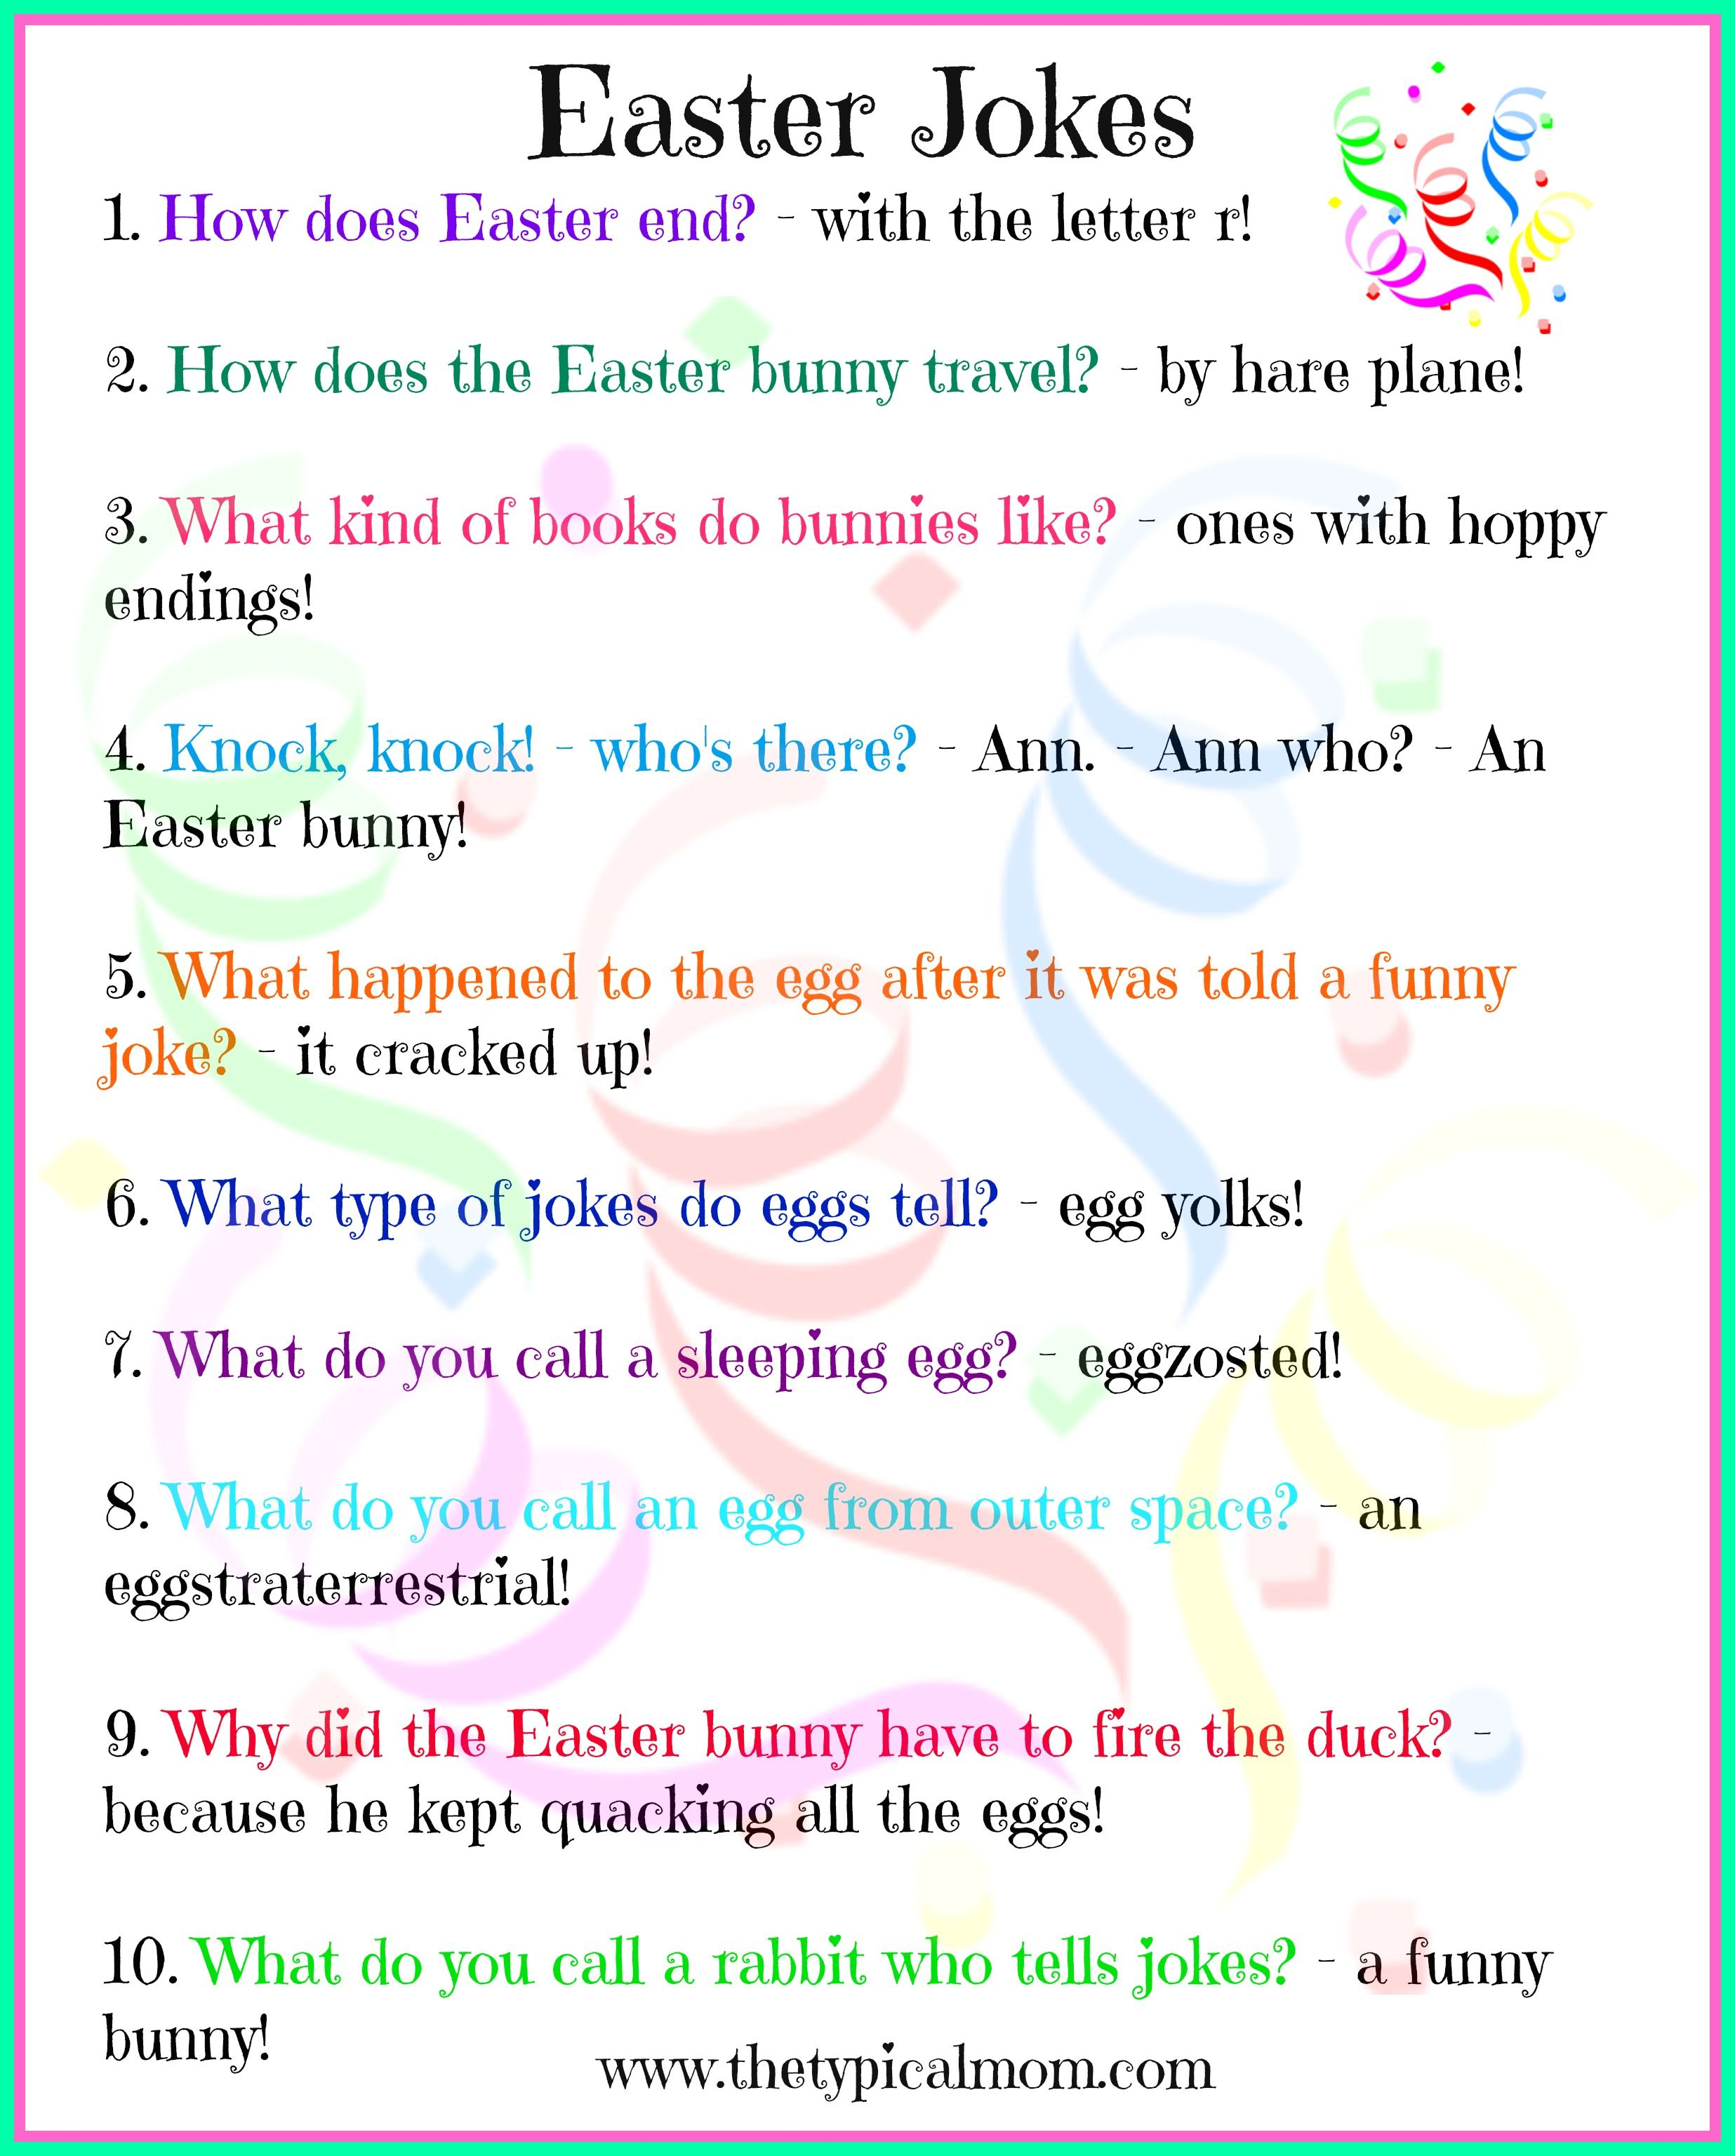 Free Printable Easter Jokes For Kids Kids Love Jokes And Here Are Some Specific To Easter